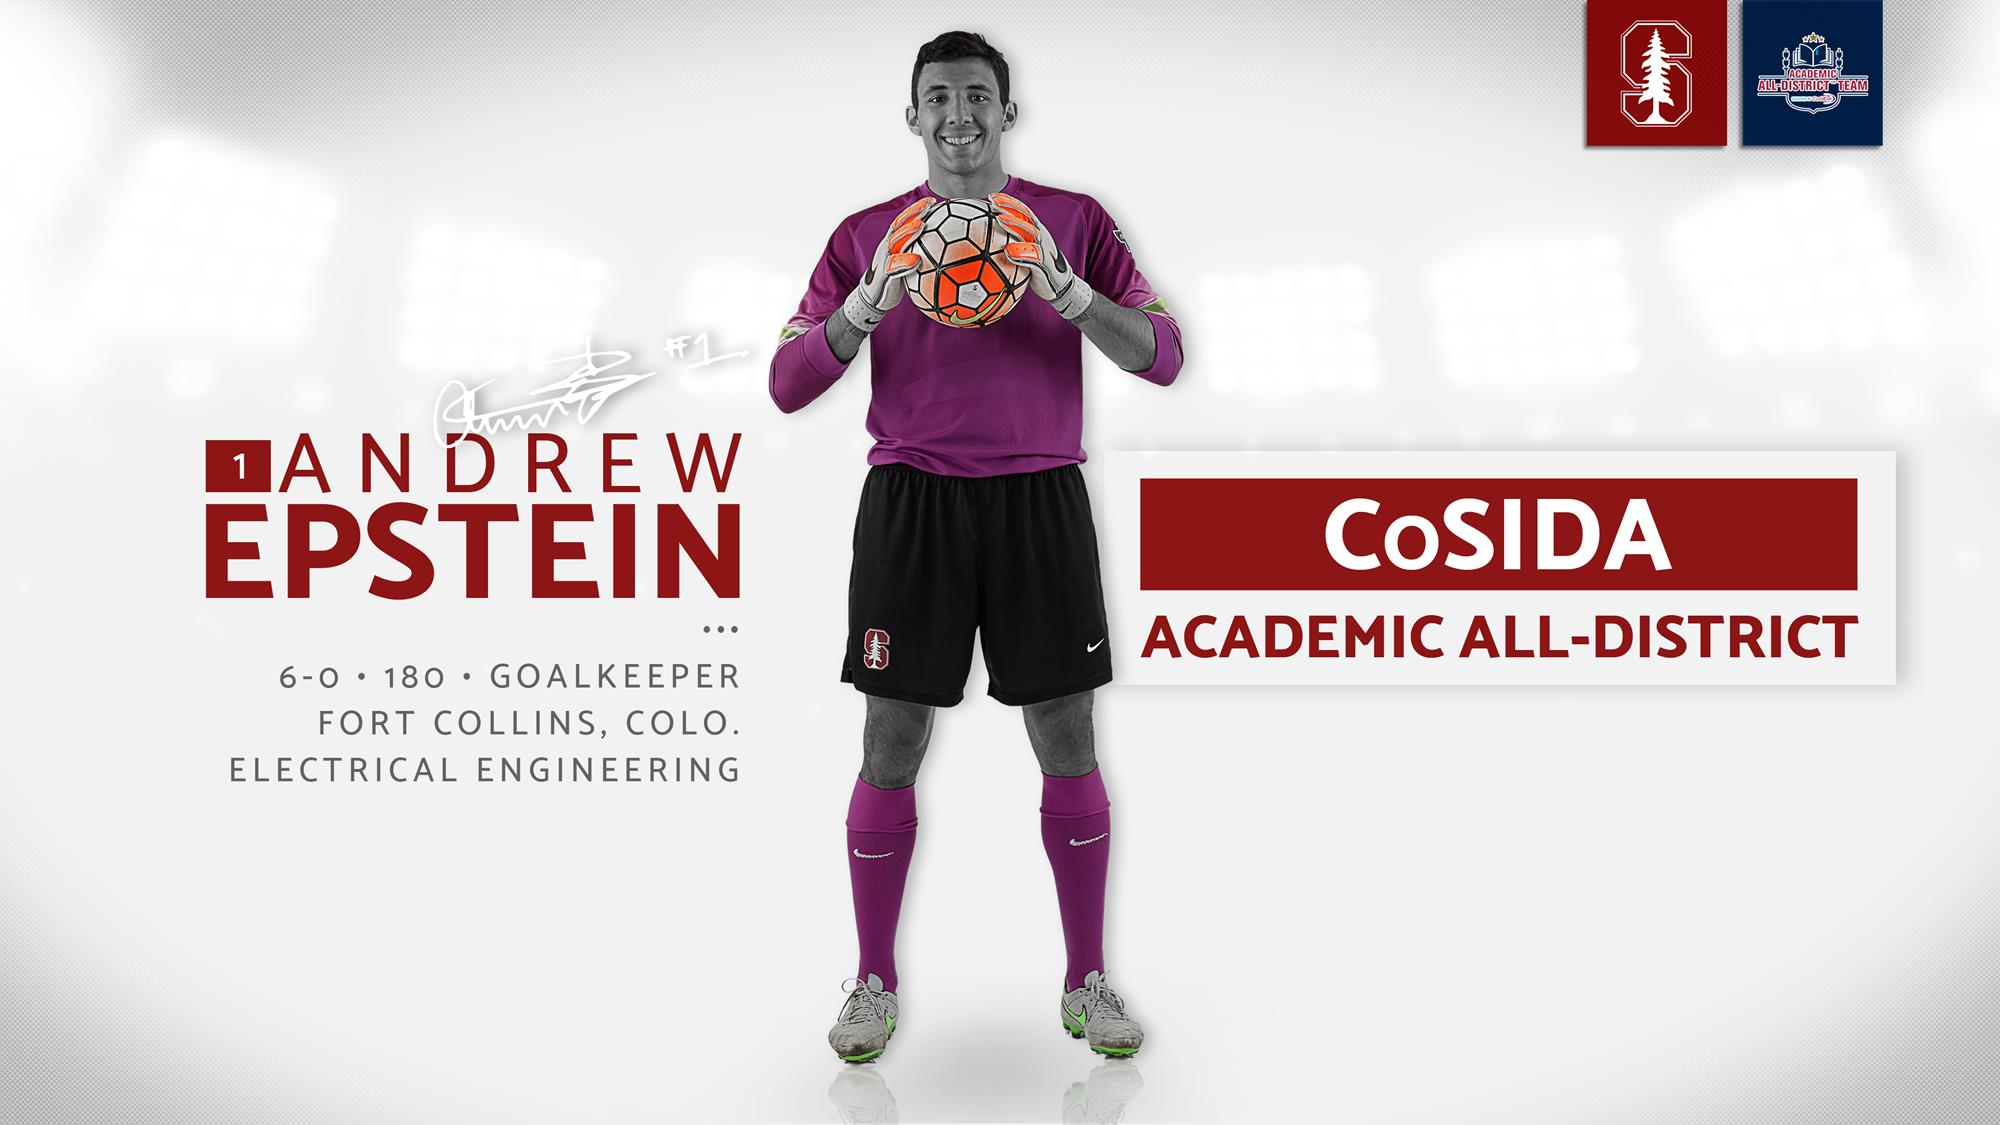 Andrew_epstein_academic_all_district